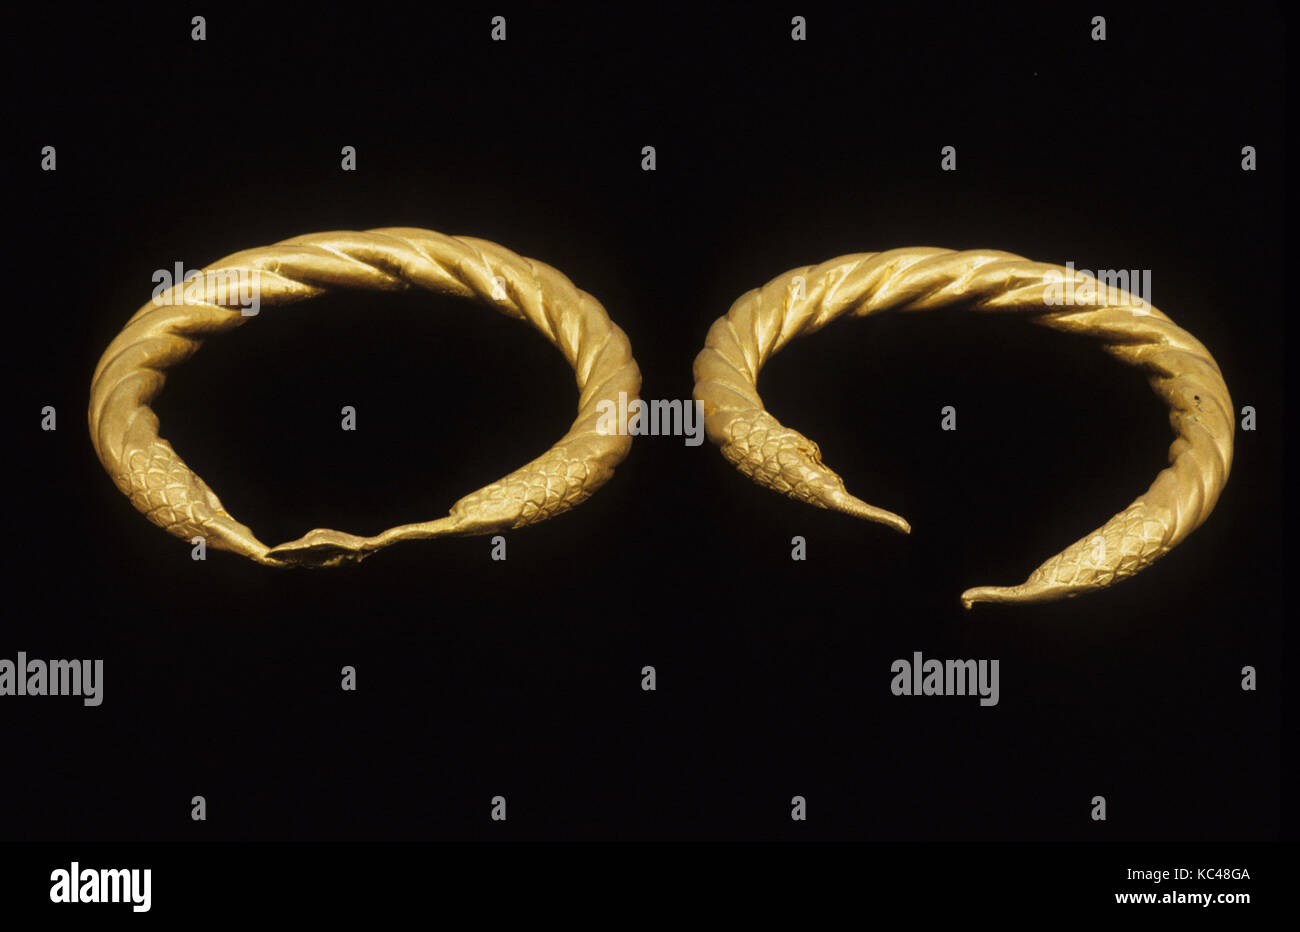 45948de311f6 Twisted Spirally Stock Photos   Twisted Spirally Stock Images - Alamy